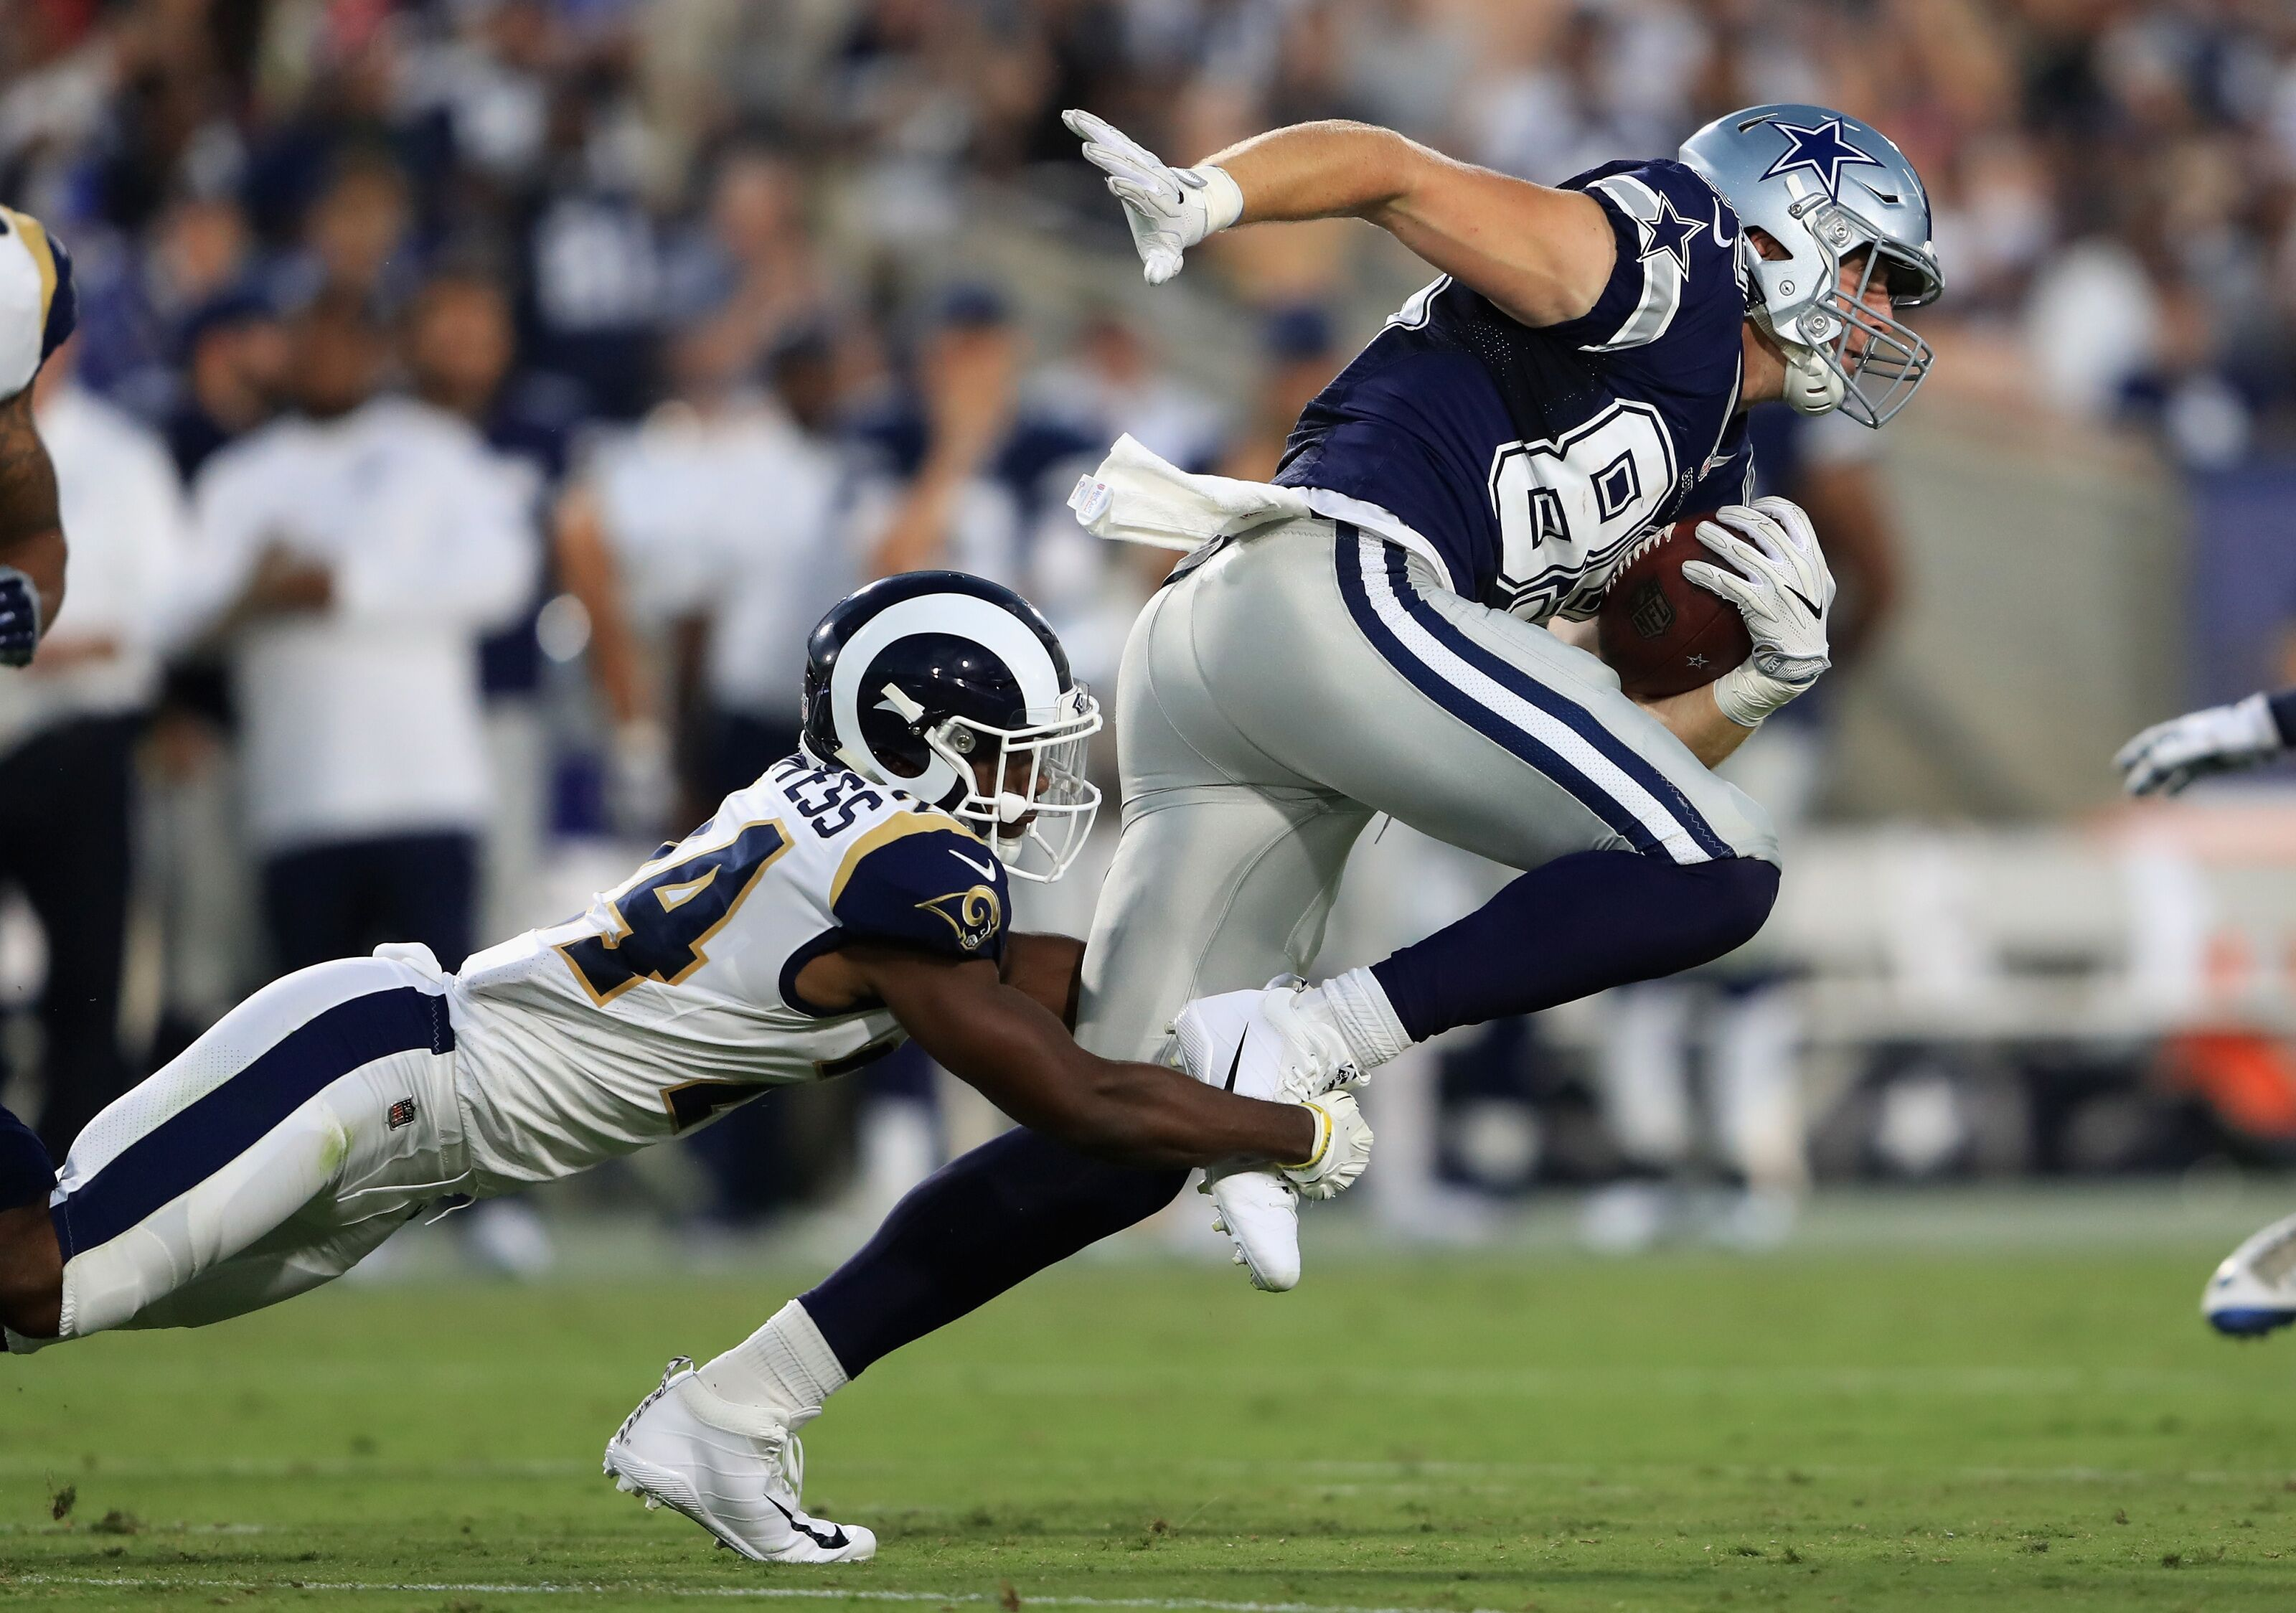 e813be8249ef8 Dallas Cowboys: Early favorite emerges at tight end